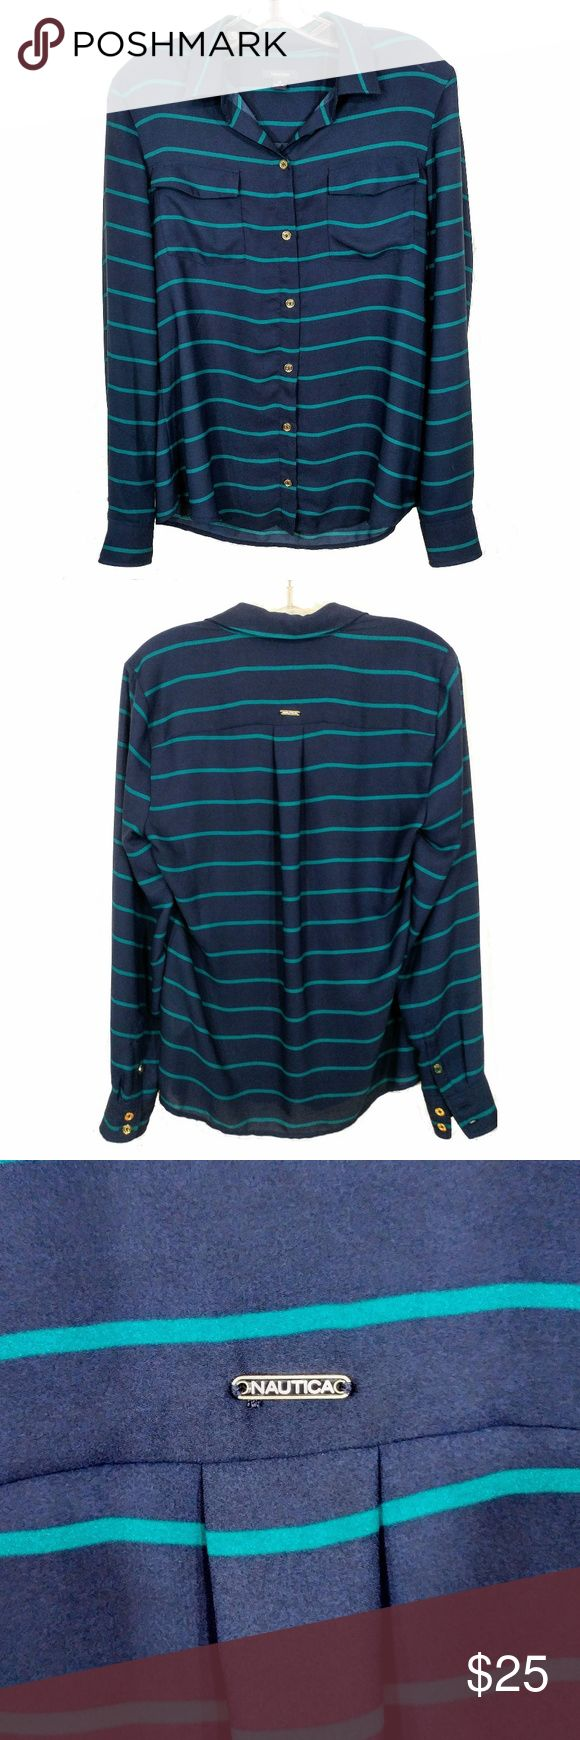 Nautica Navy Blue and Emerald Striped Blouse Flowy and comfy, this blouse would look great tucked into a pencil skirt OR with jeans and flats! This is in excellent used condition as I see no significant signs of wear Nautica Tops Blouses